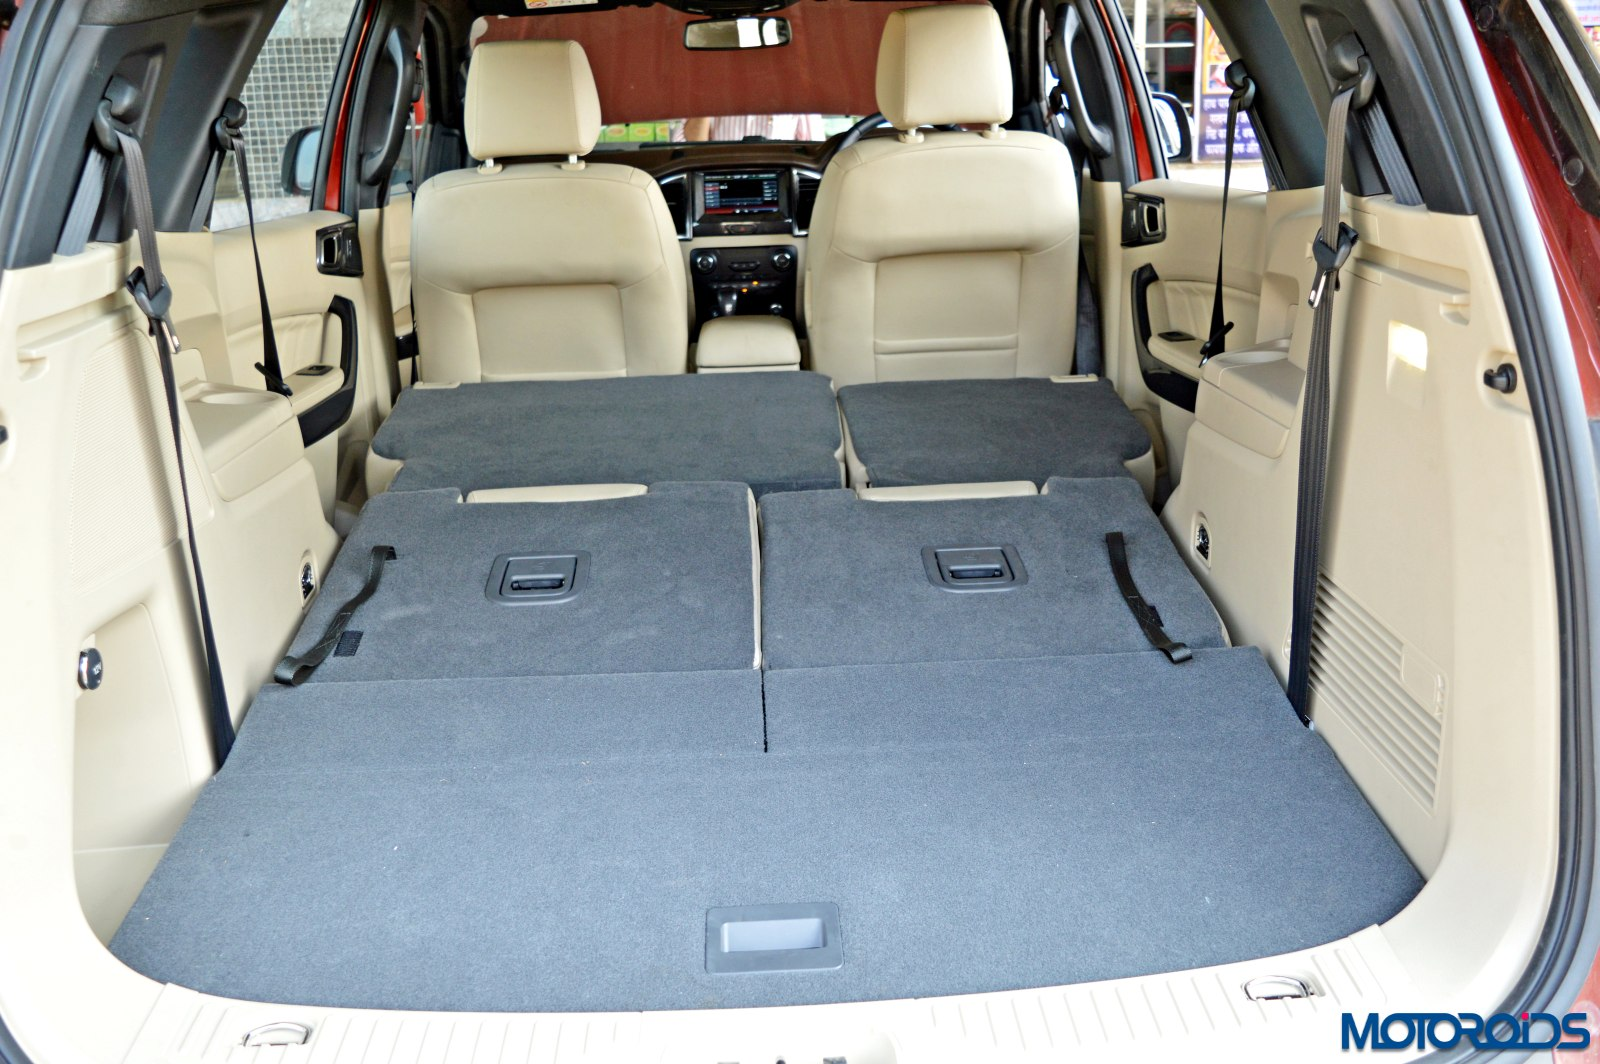 new 2016 Ford Endeavour boot luggage (3)